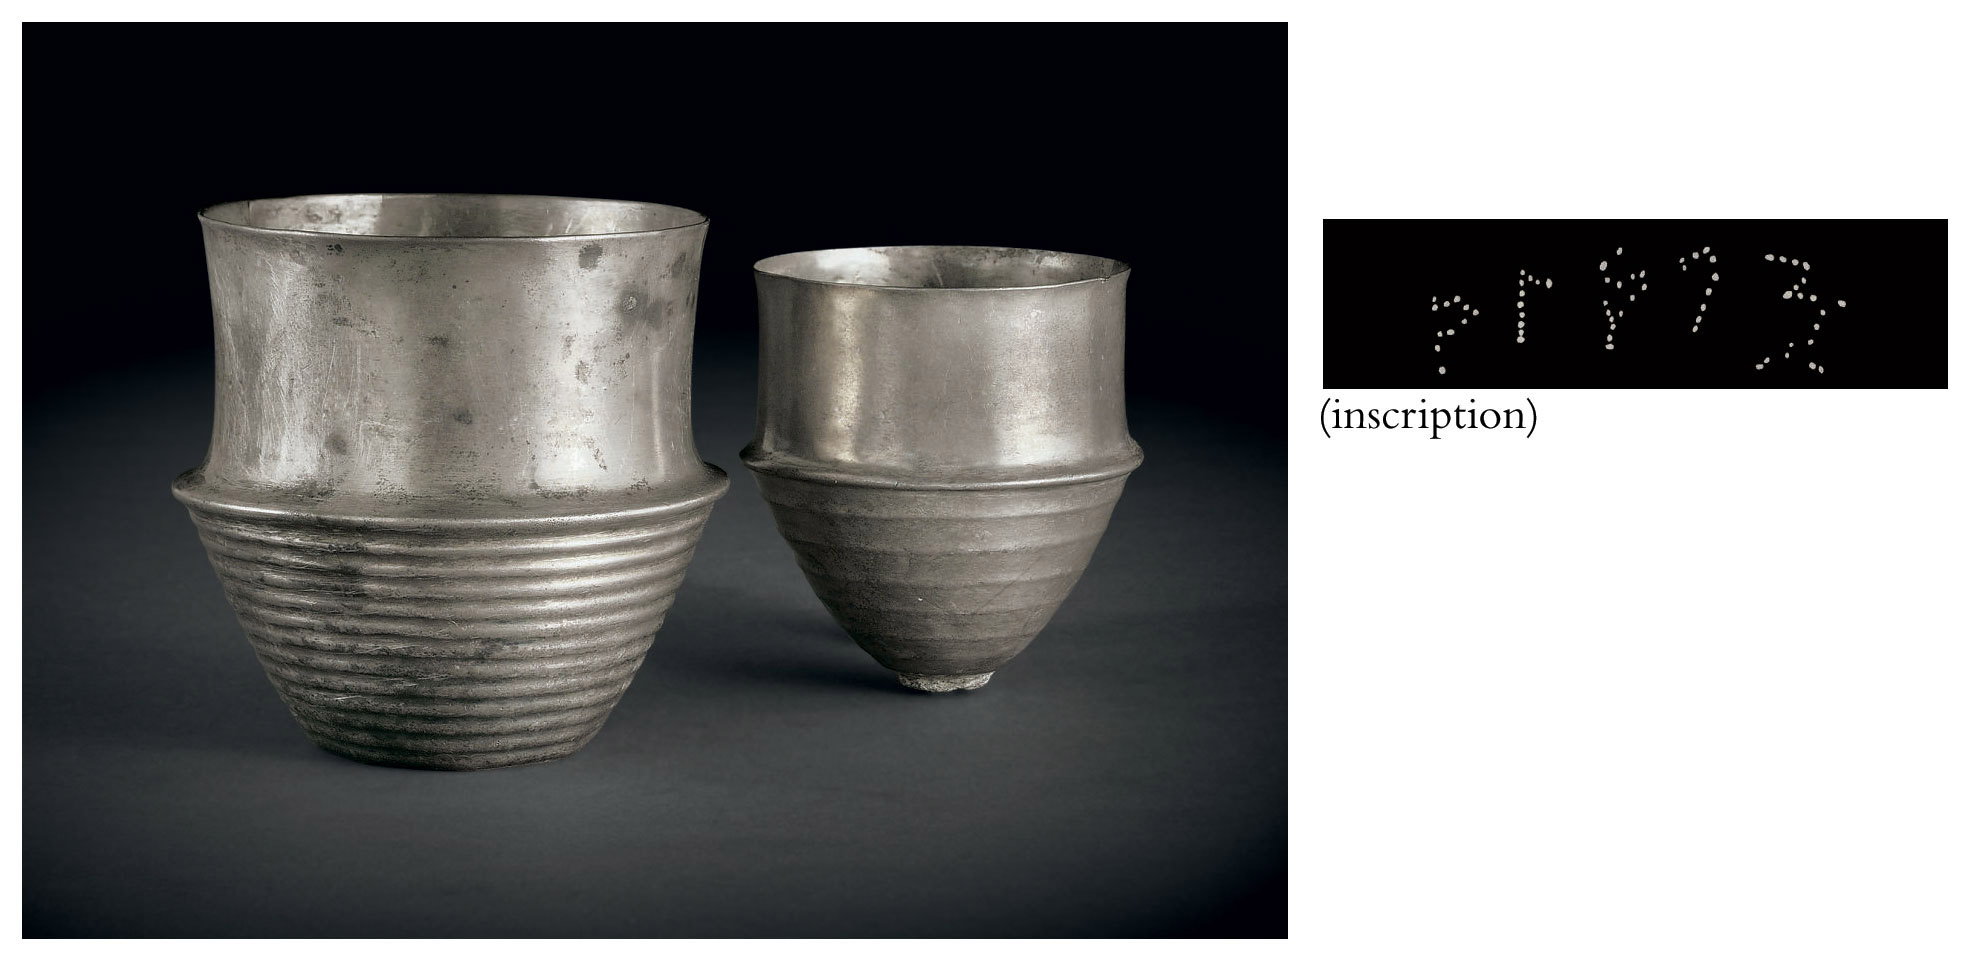 Two silver cups